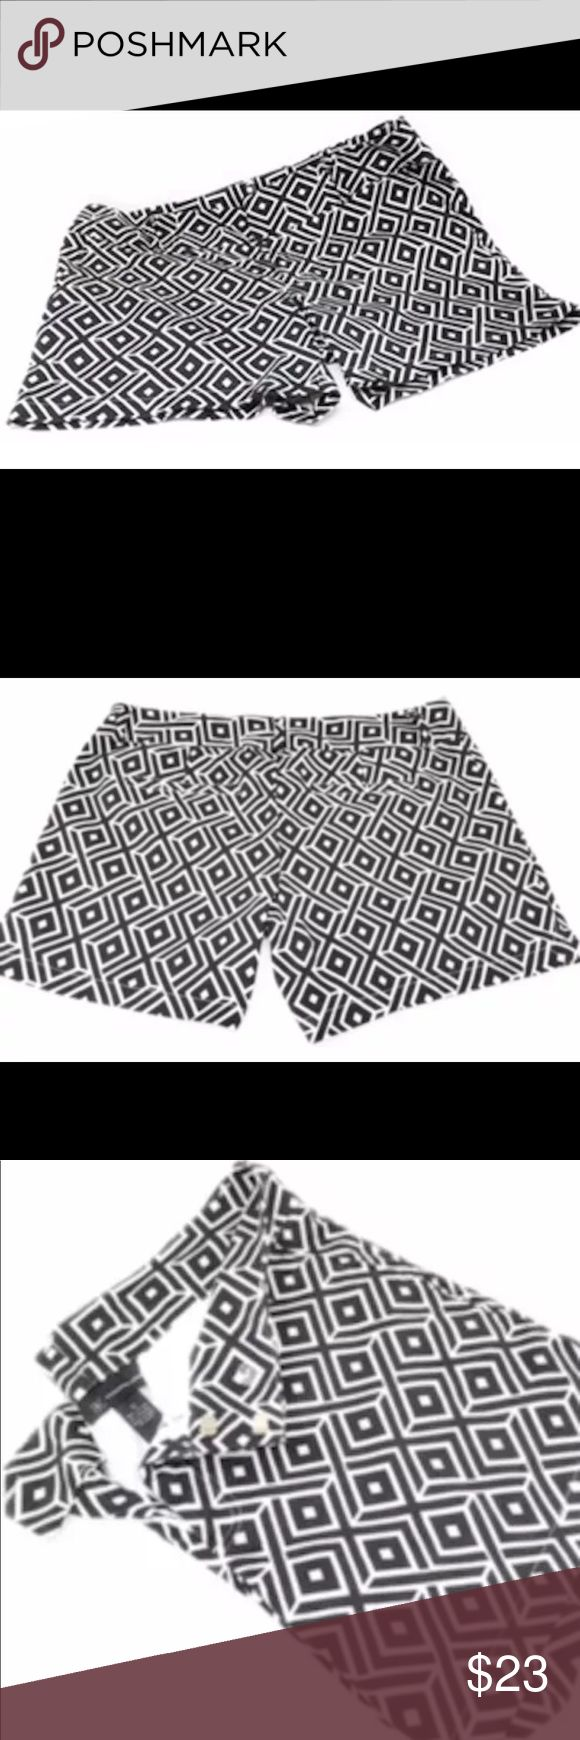 "INC Women's Shorts Black White Belt Loops Size 10 INC Women's Shorts Black White Belt Loops Size 10 International Concepts. 	 	•	Size 10 	•	Black and White print design 	•	Belt loops 	•	Length - 14"" 	•	Inseam - 5"" 	•	Rise - 8"" 	•	98% Cotton and 2% Spandex. Some pilling in the inside crease area. Not very noticeable.? INC International Concepts Shorts"